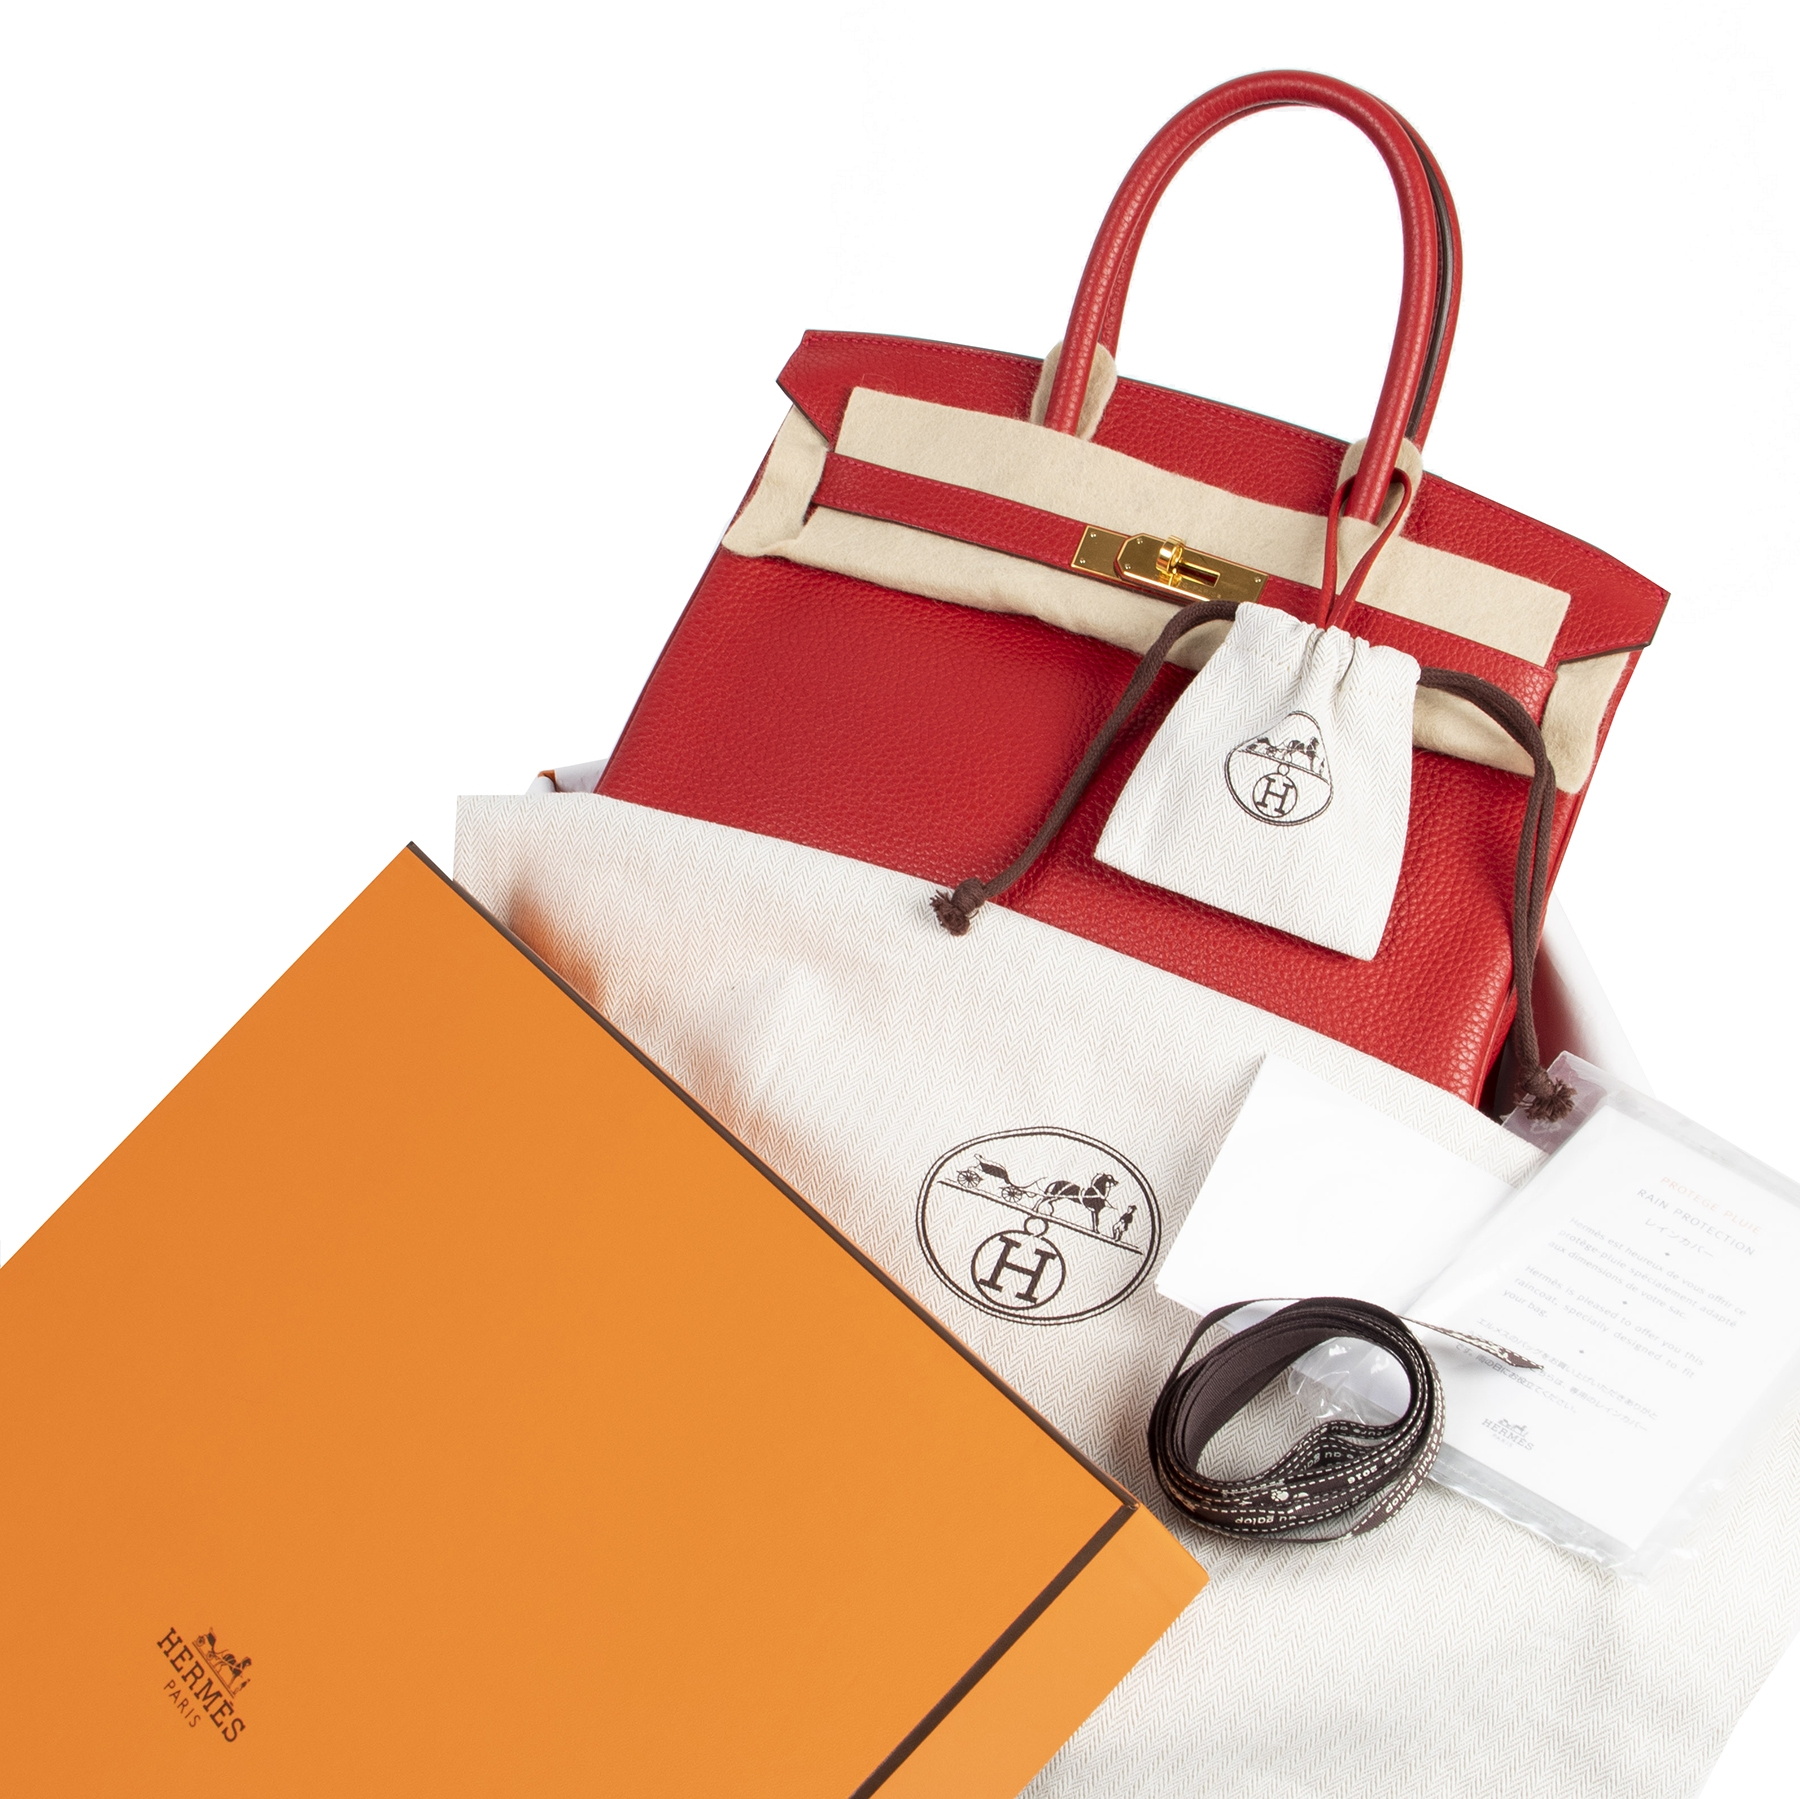 skip the waiting list shop safe online As New Hermes Birkin 30 Rouge Casaque Taurillon Clemence GHW